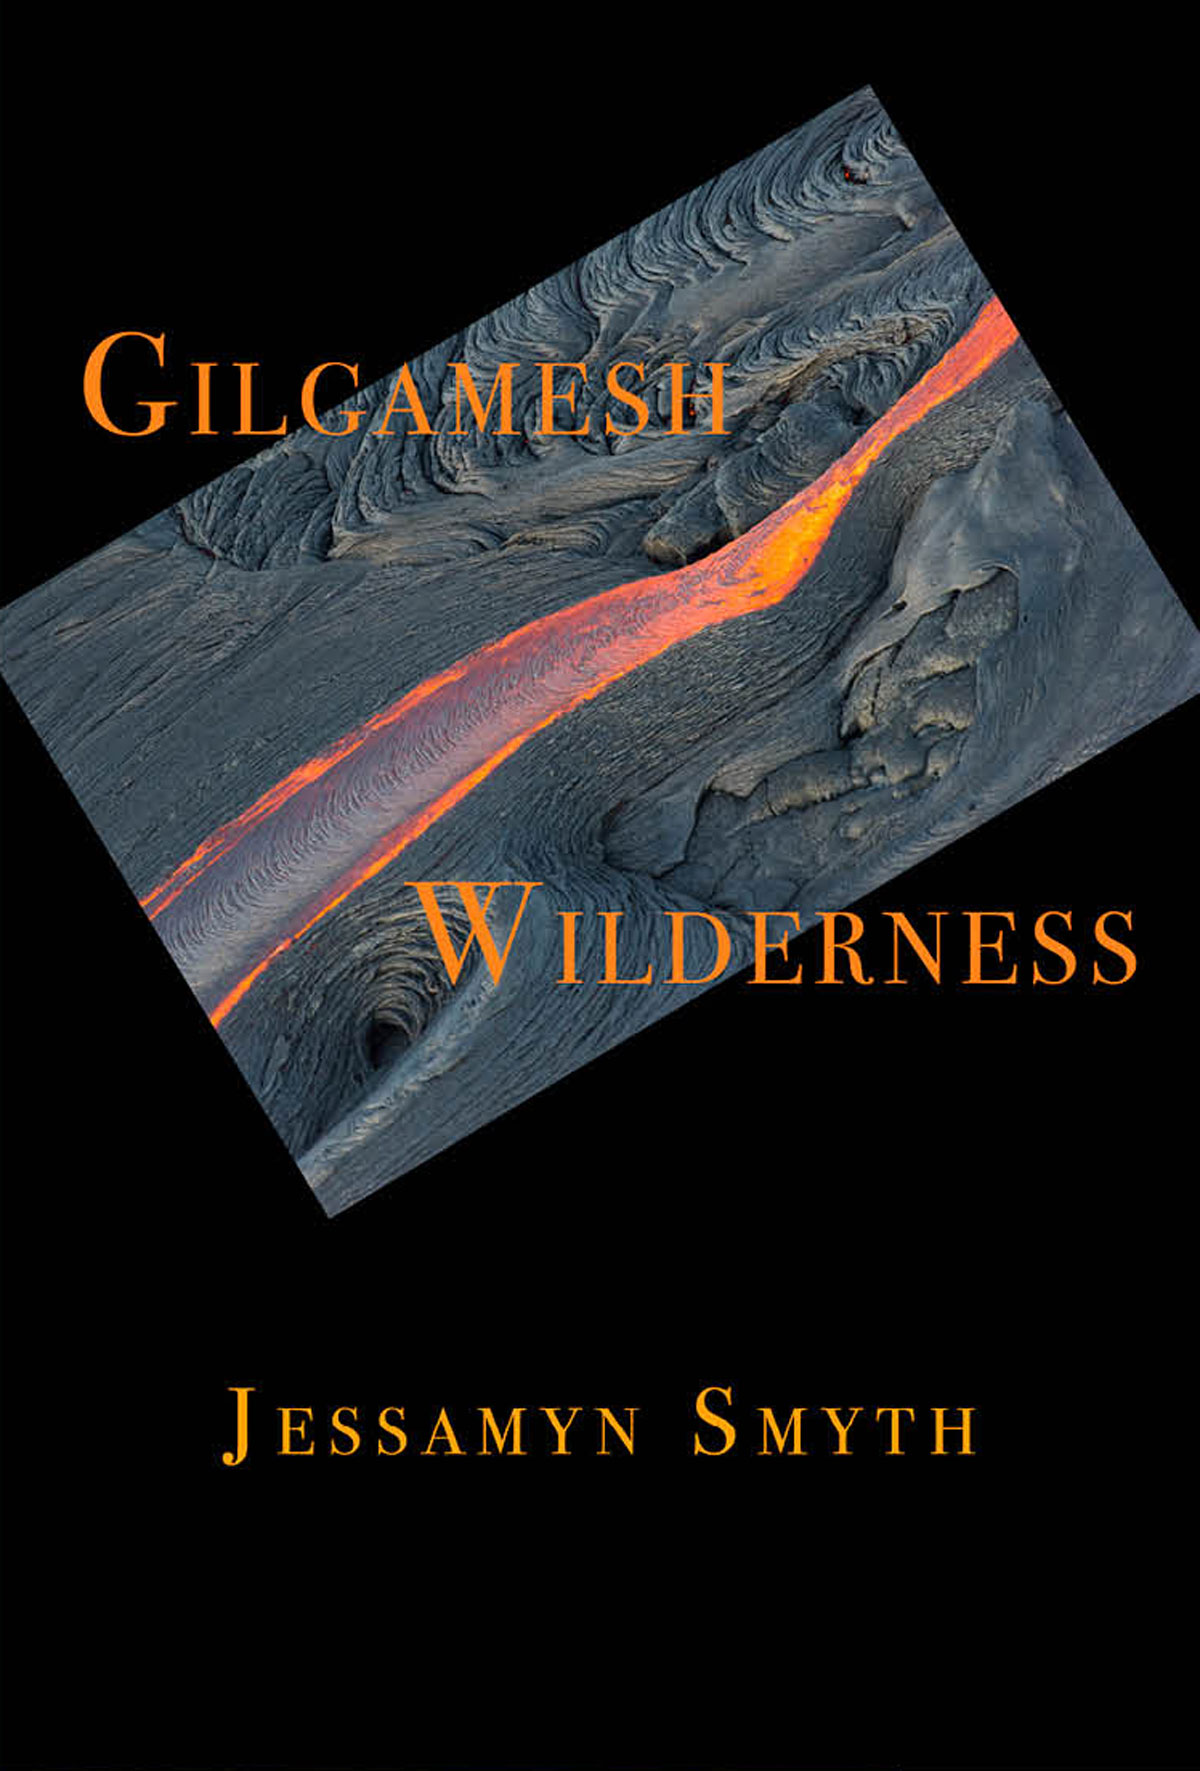 gilgamesh-wilderness-cover-draft